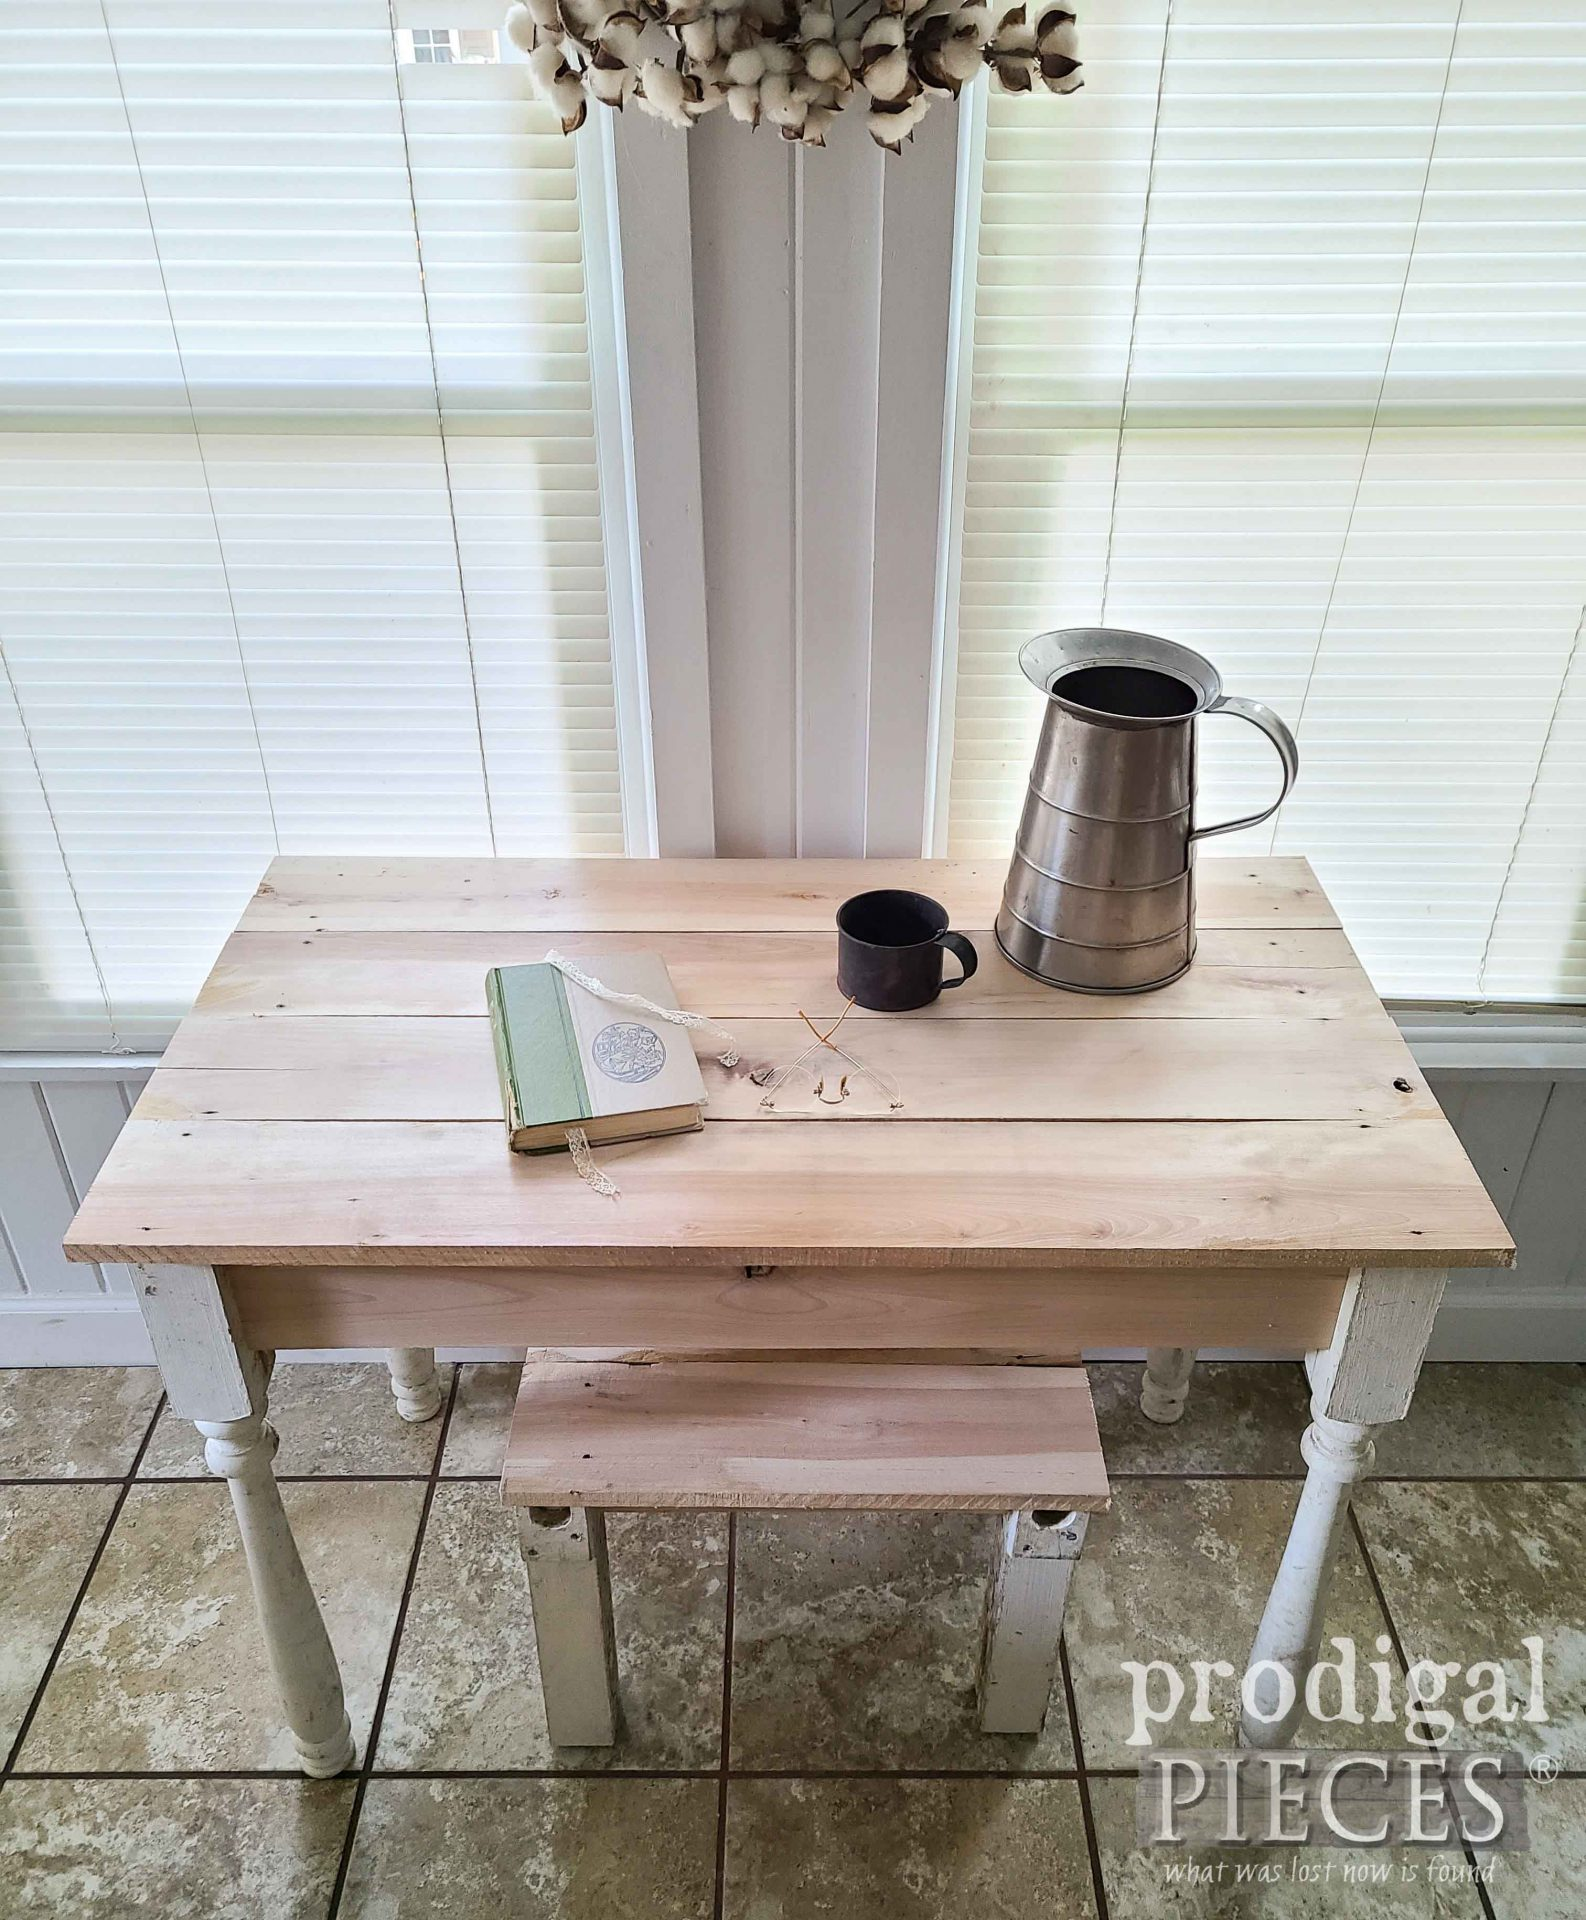 Top of Reclaimed Desk Set from Pallet Wood by Larissa of Prodigal Pieces | prodigalpieces.com #prodigalpieces #rustic #diy #home #farmhouse #homedecor